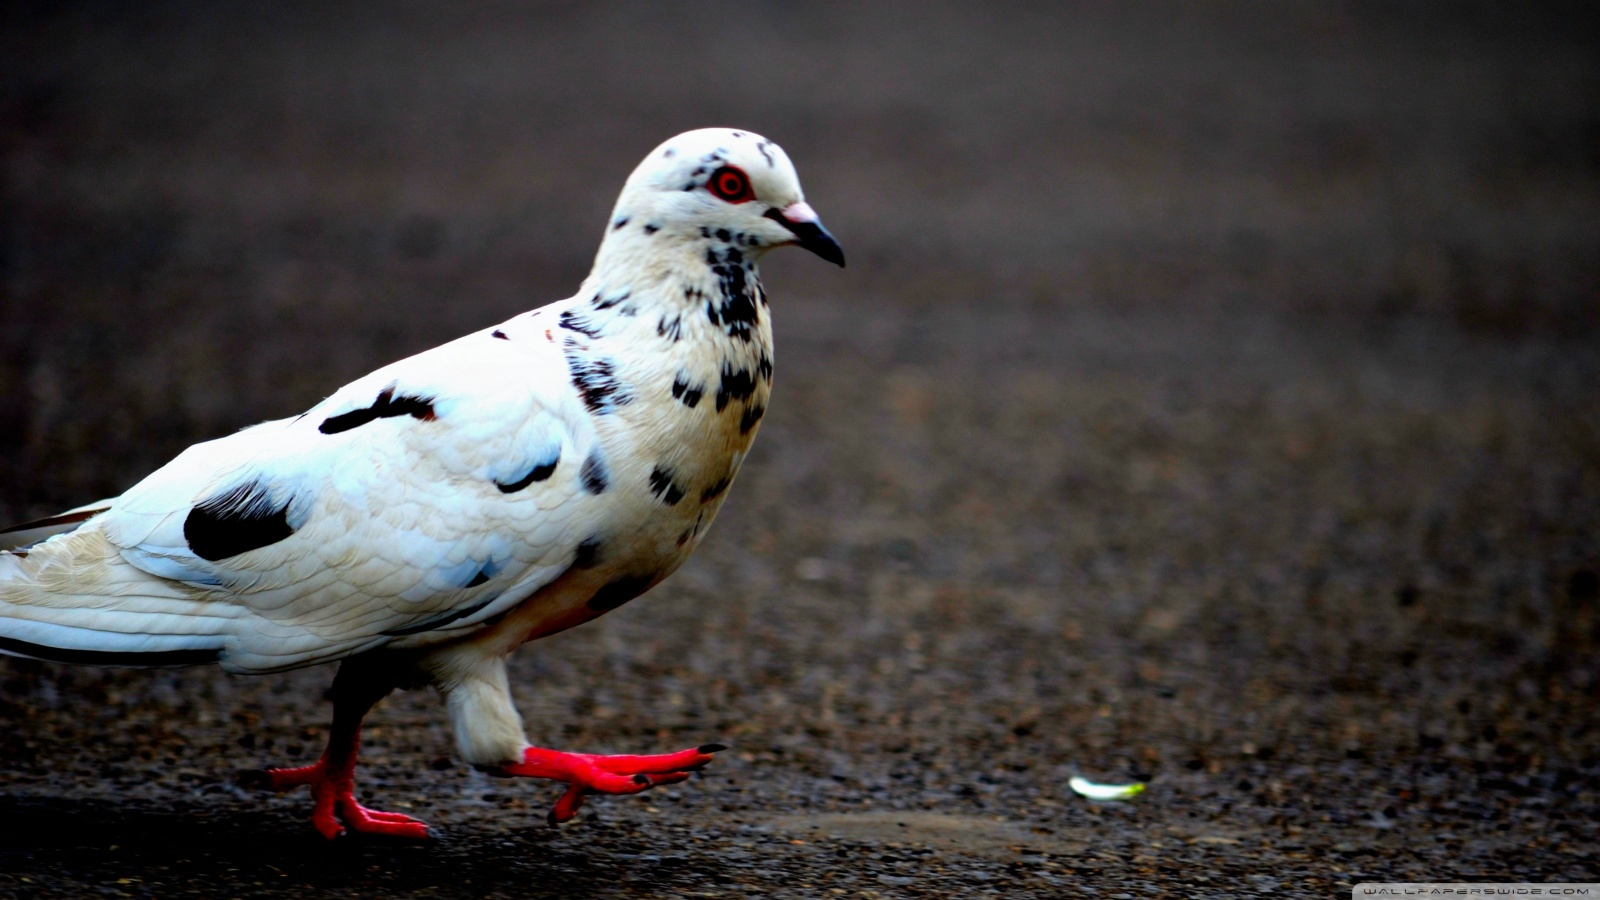 M Name Wallpaper Hd Awesome Amp Beautiful Wallpapers Of Pigeon In Hd For More